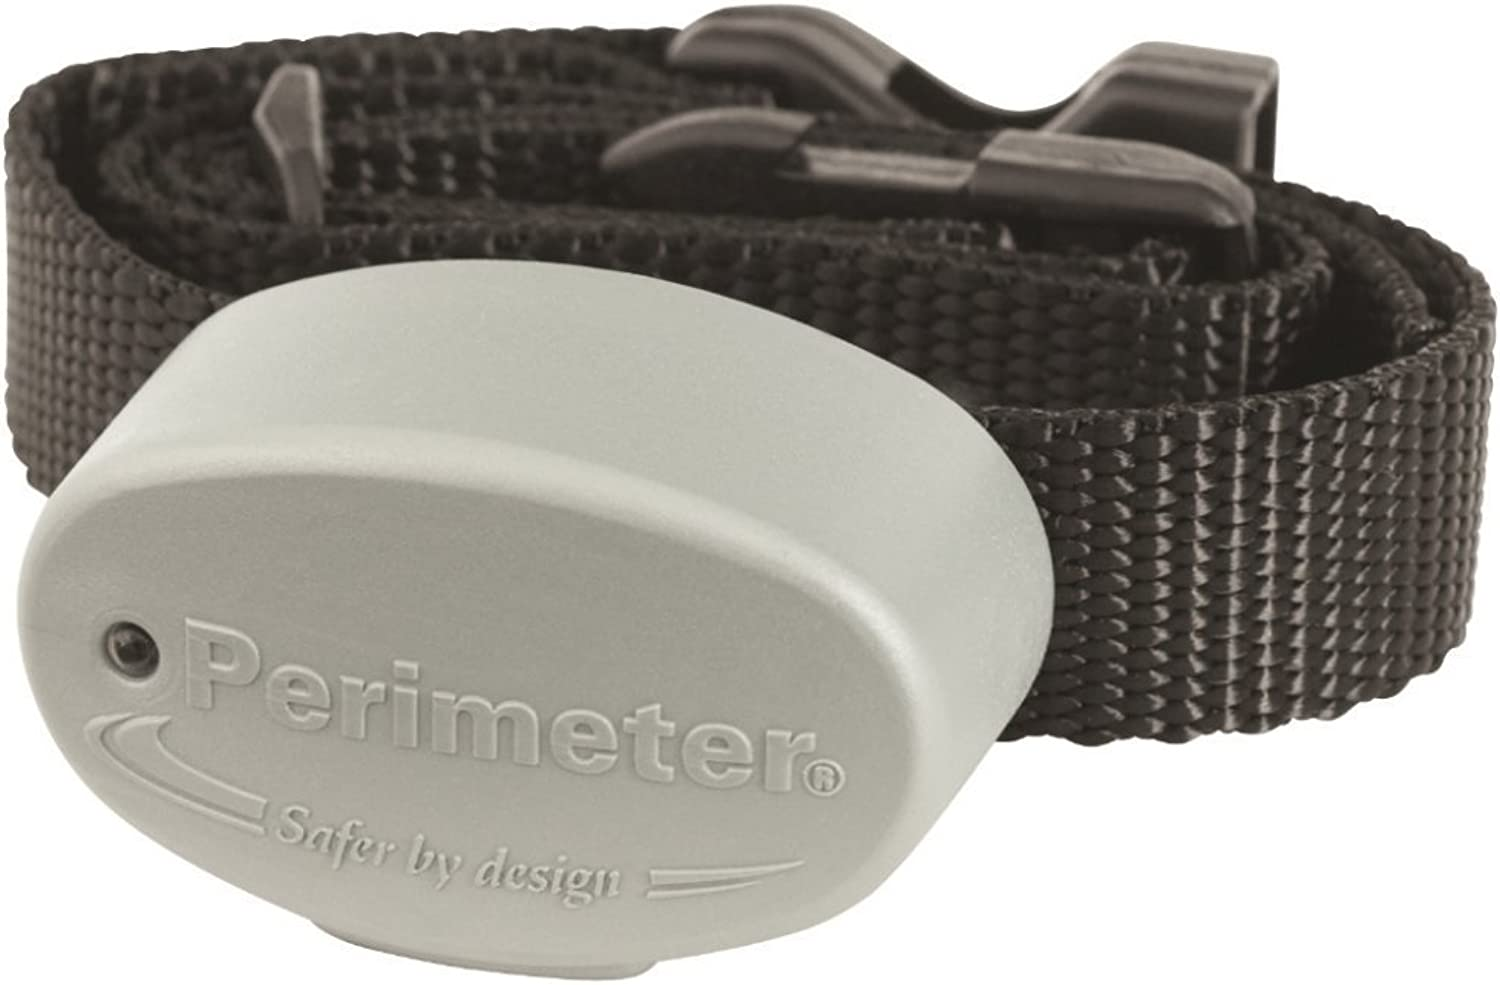 Perimeter Technology  Invisible Fence R21 Compatible Dog Fence Collar  Select The Frequency Your Fence Runs On